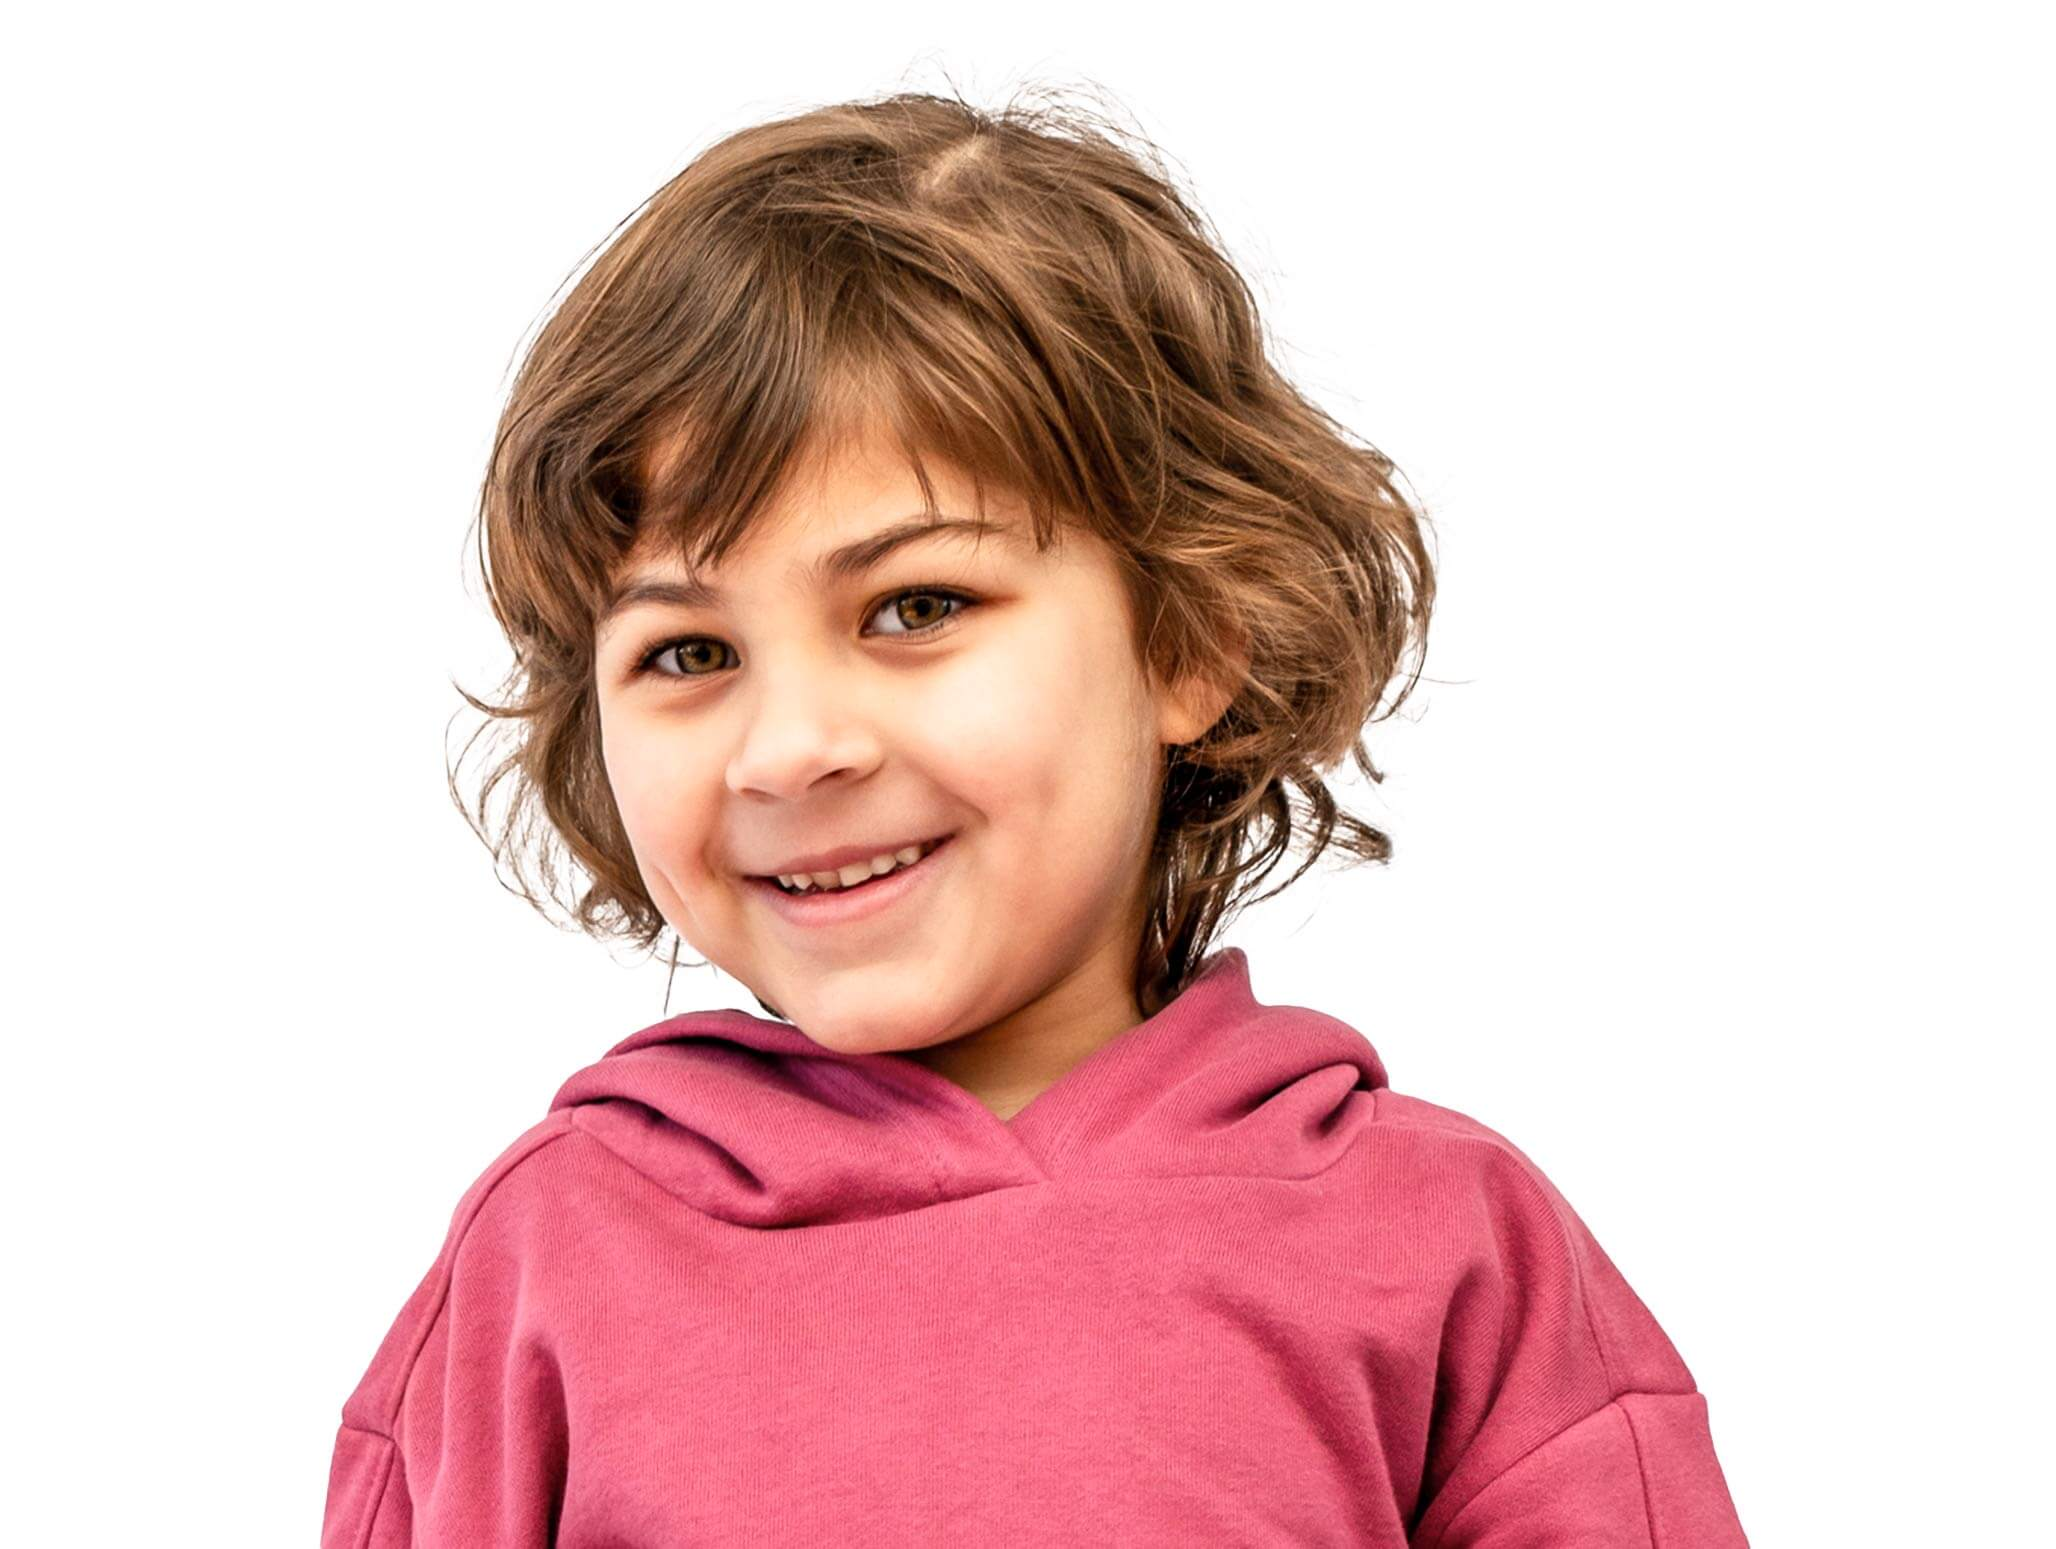 preschool aged girl with autism looking at camera smiling slightly